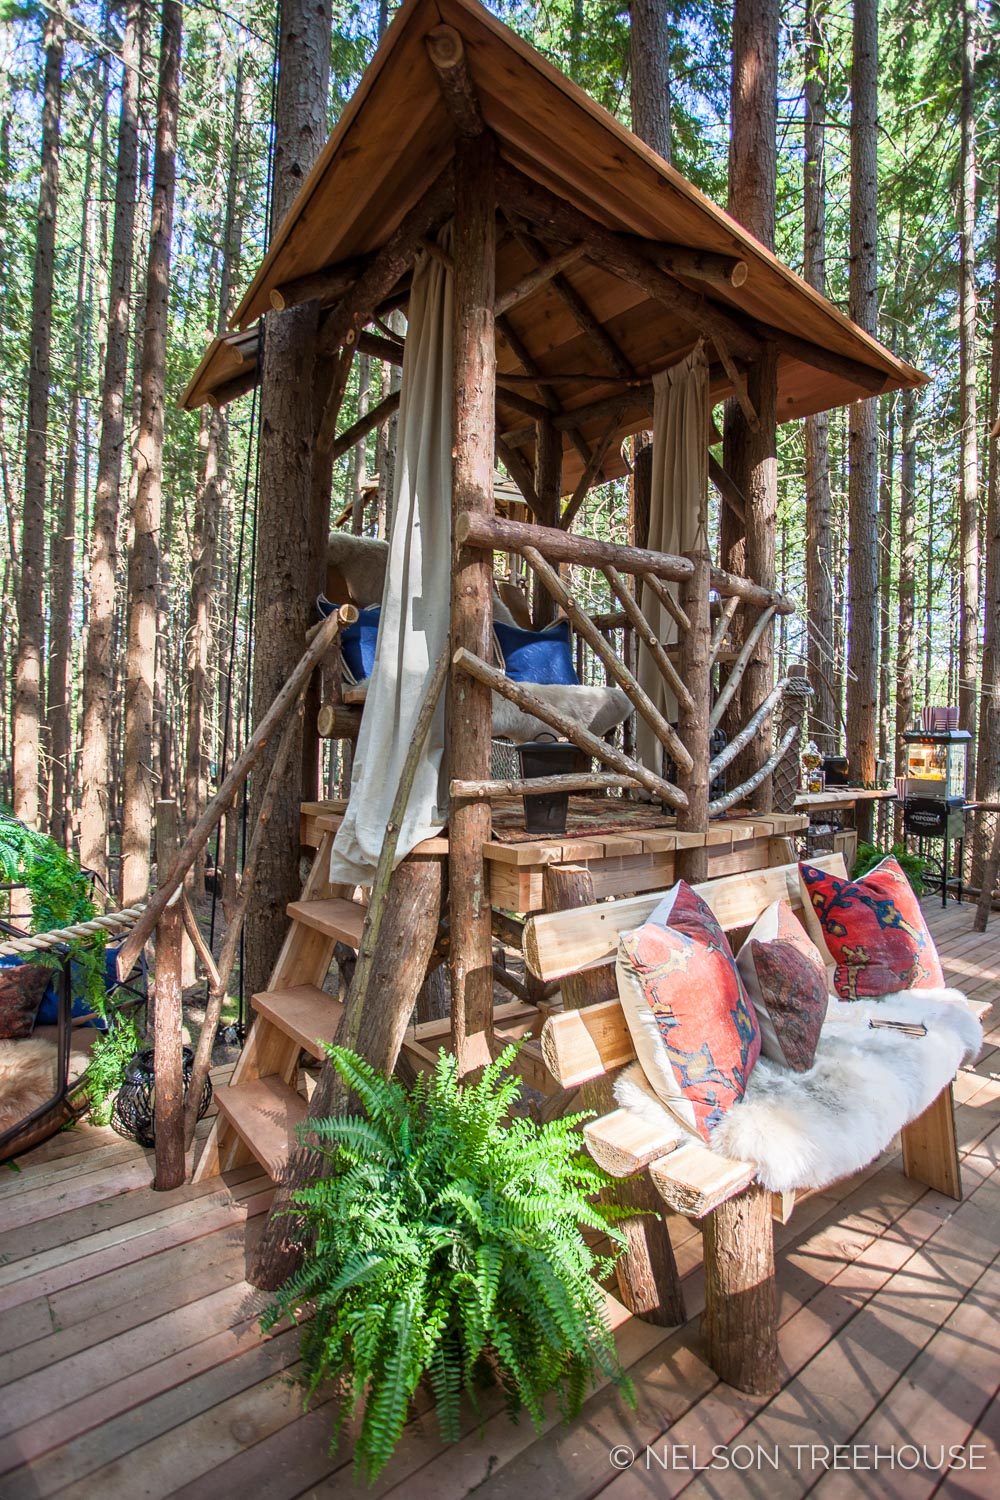 Treetop-Movie-Theater-2018-Nelson-Treehouse-578.jpg